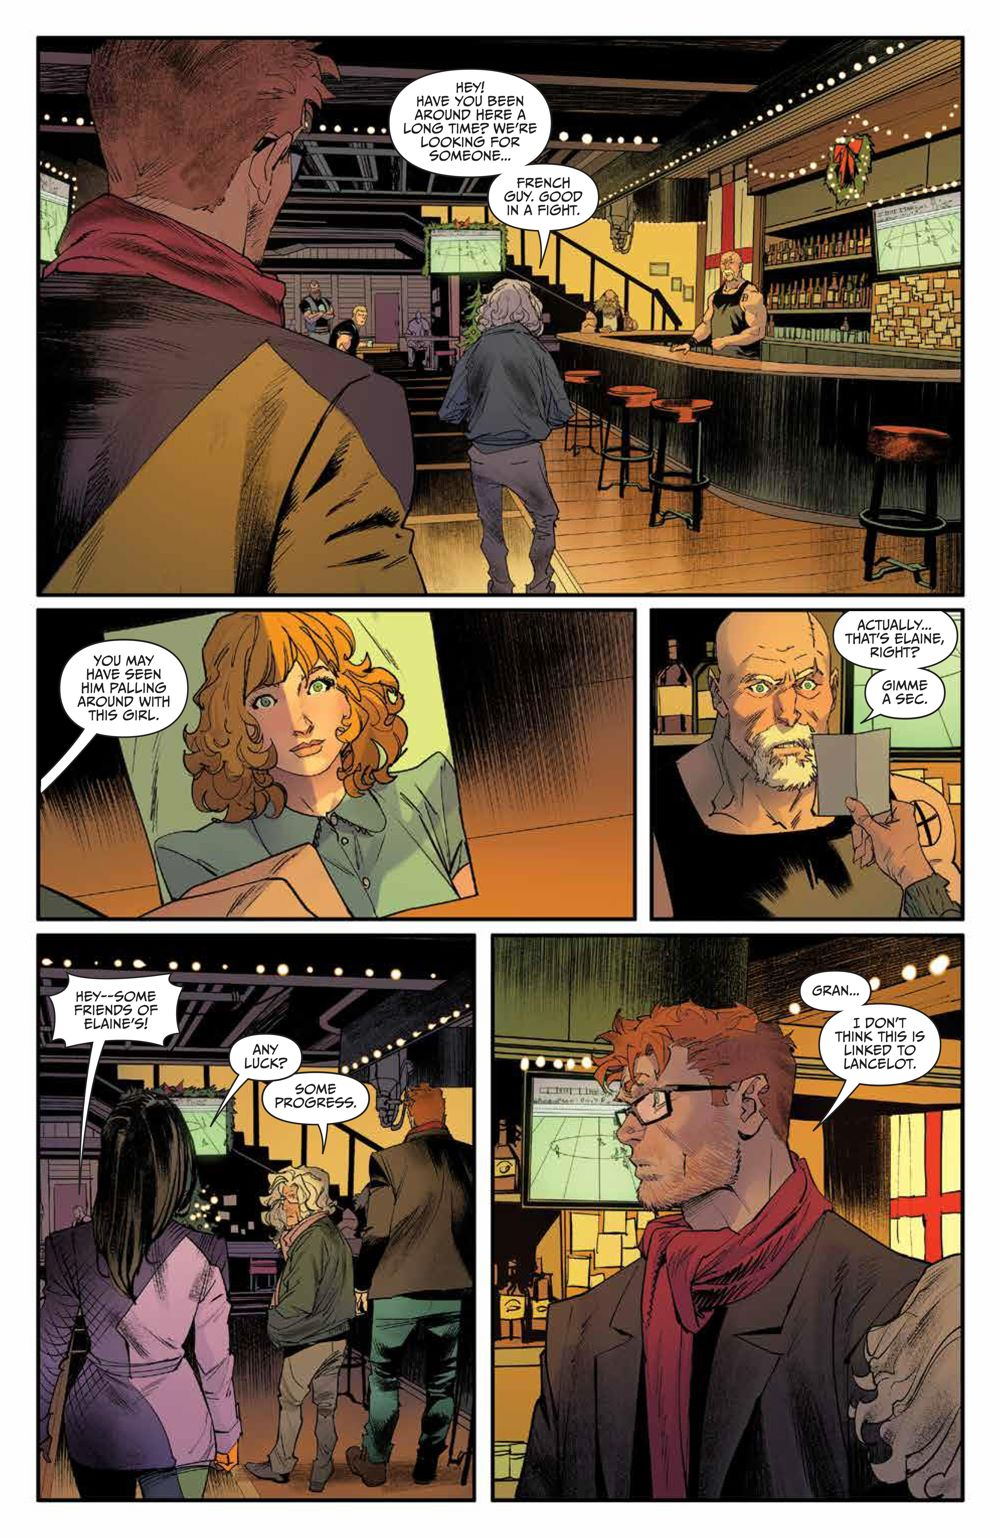 OnceFuture_v3_SC_PRESS_22 ComicList Previews: ONCE AND FUTURE VOLUME 3 THE PARLIAMENT OF MAGPIES TP